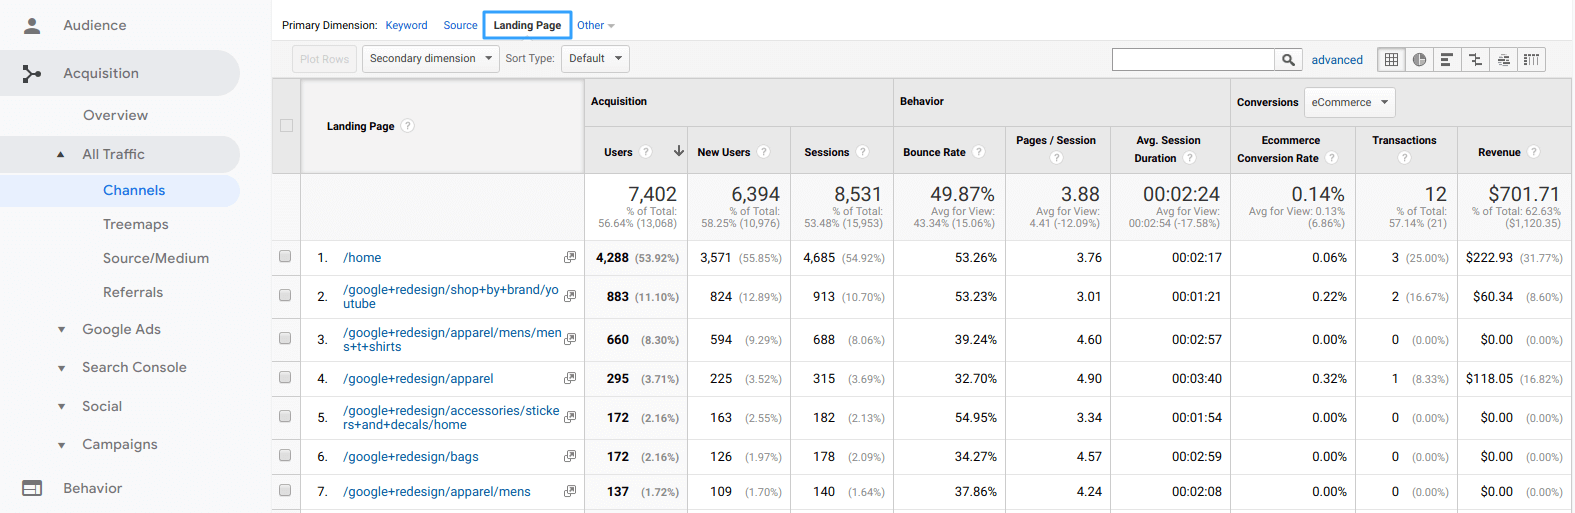 Landing page report in Google Analytics